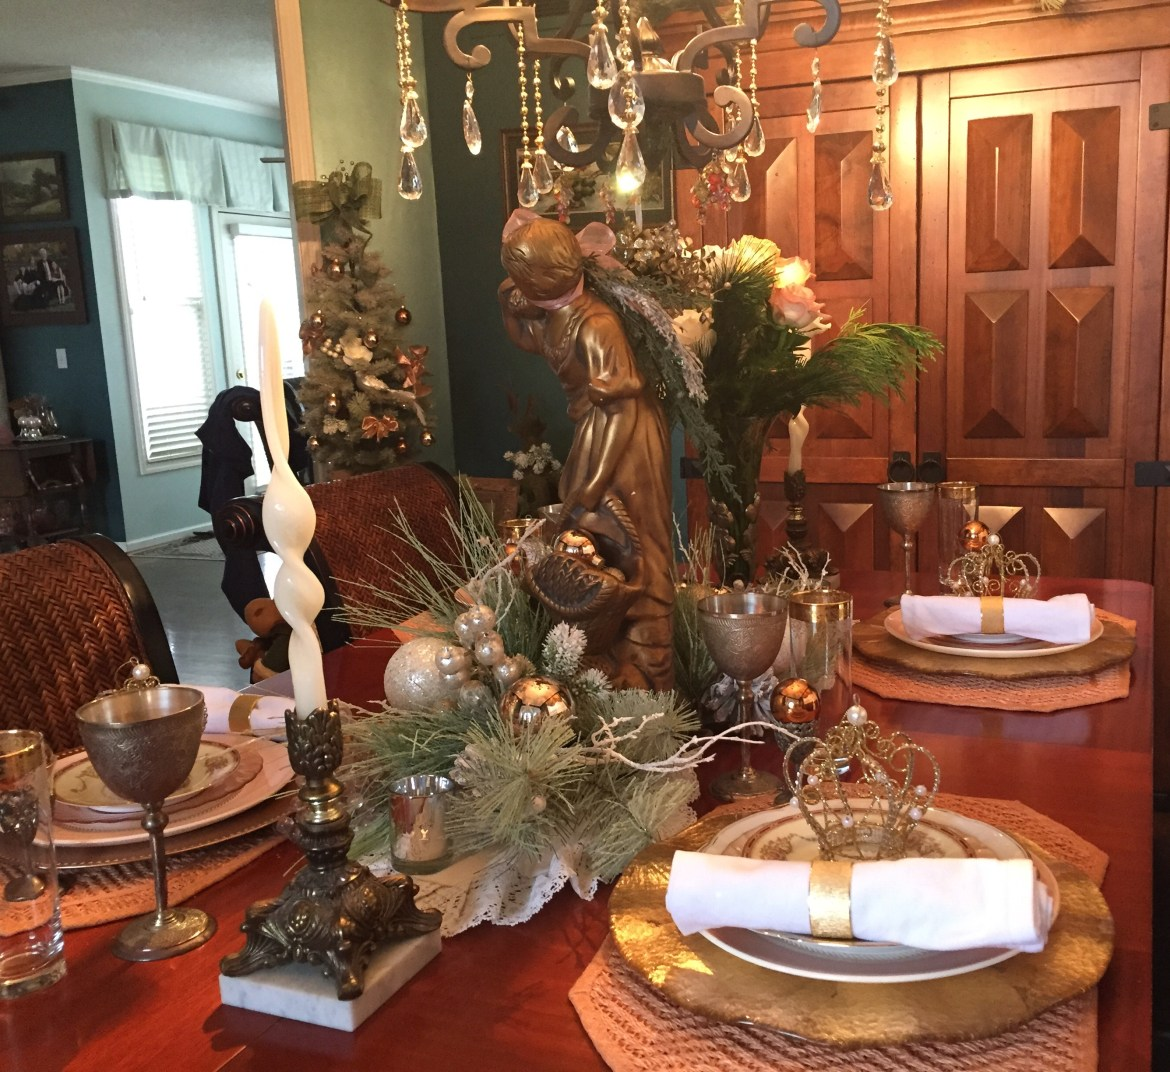 Dining Room at Christmas.jpg